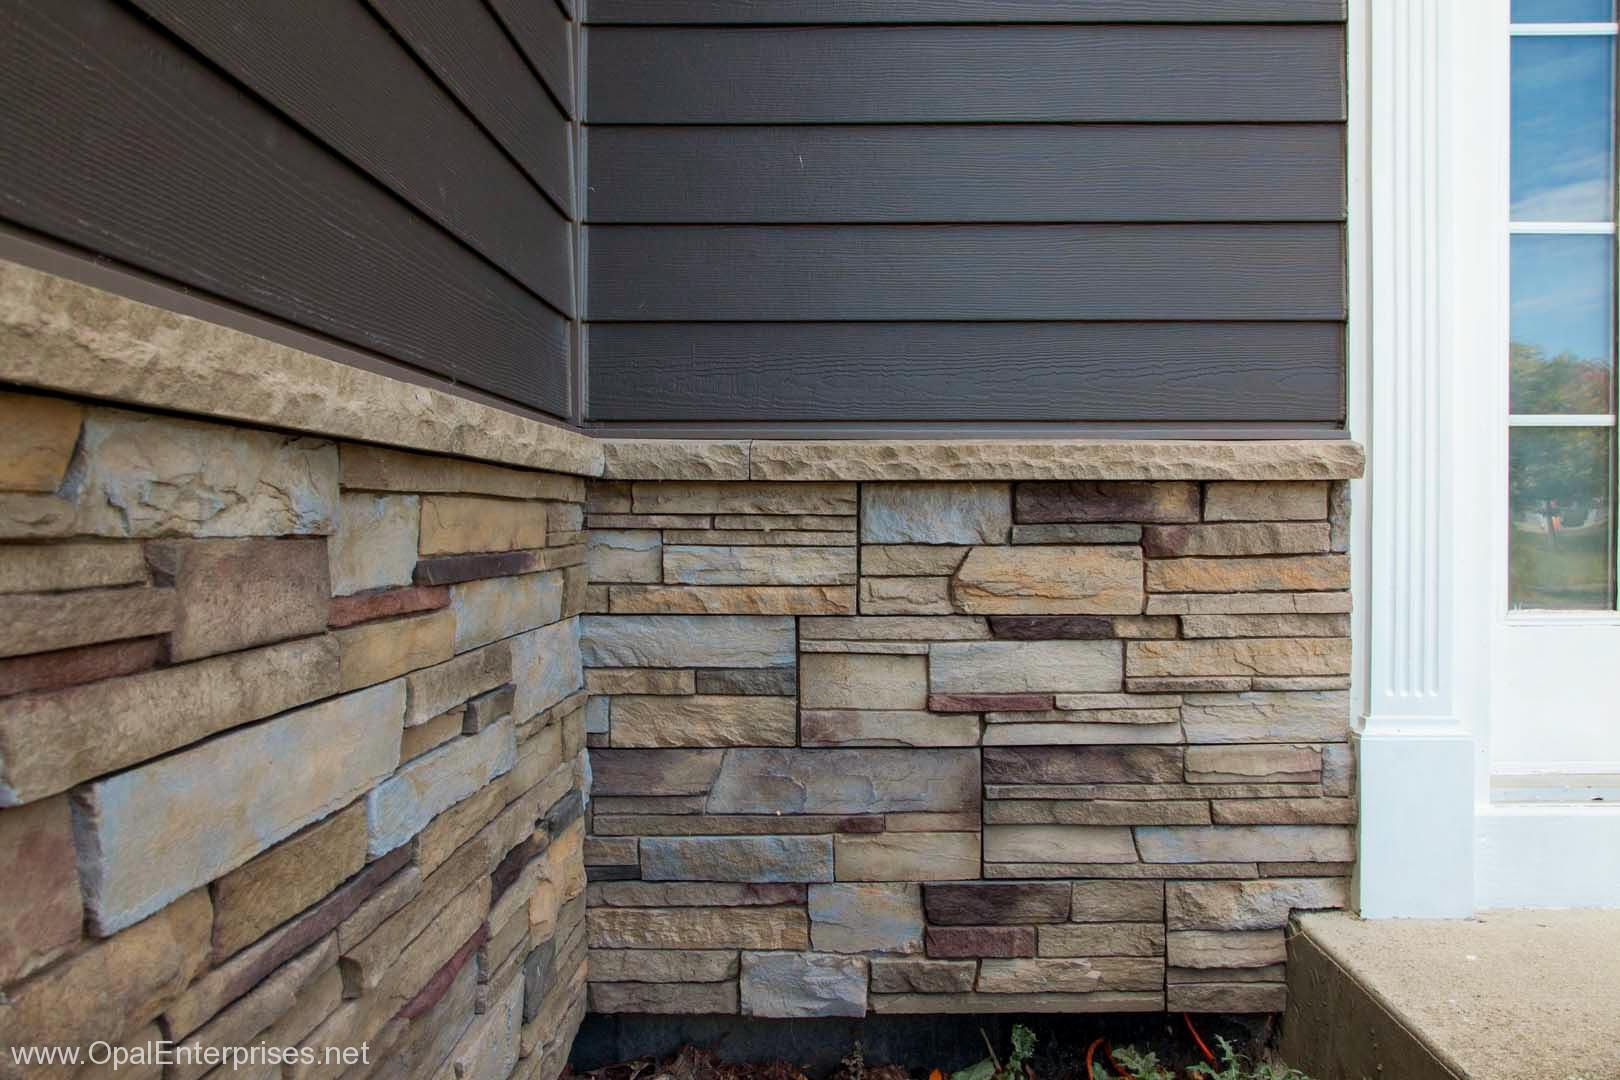 Plum creek versetta stone siding with rich espresso james for Rock siding on house